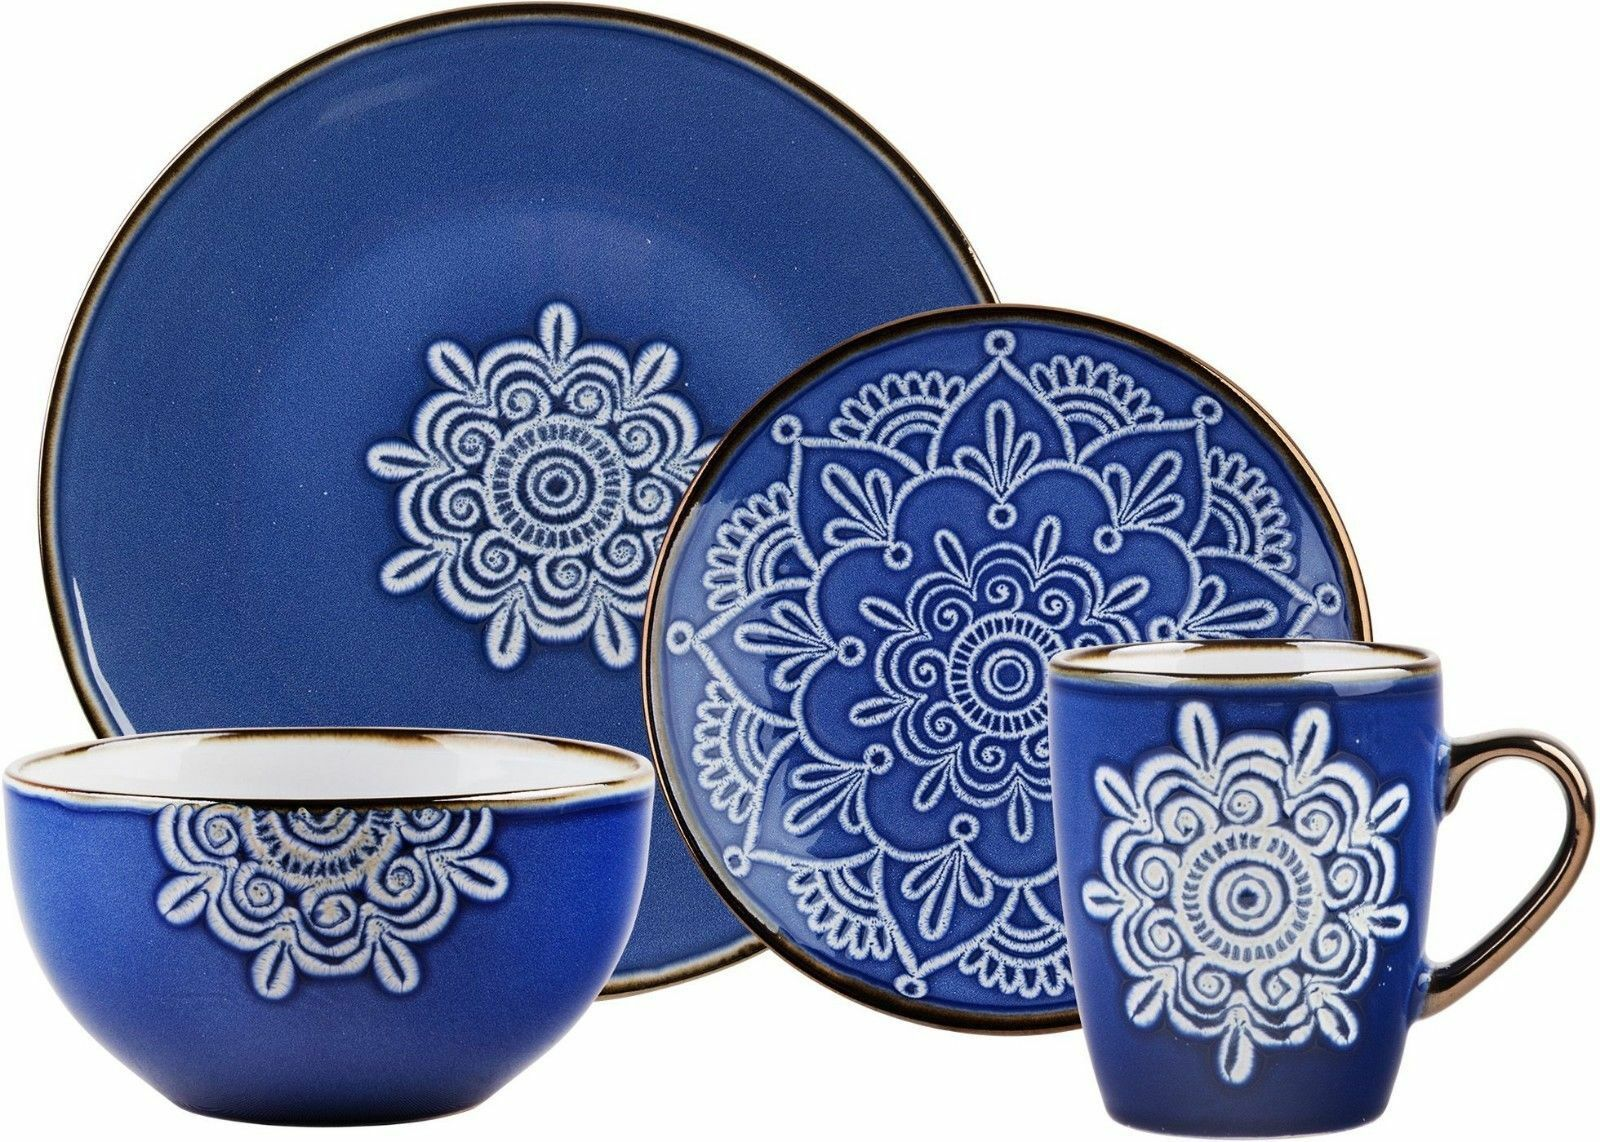 16 Pièce Bleu Médaillon Dinnerware Set par Home Essentials